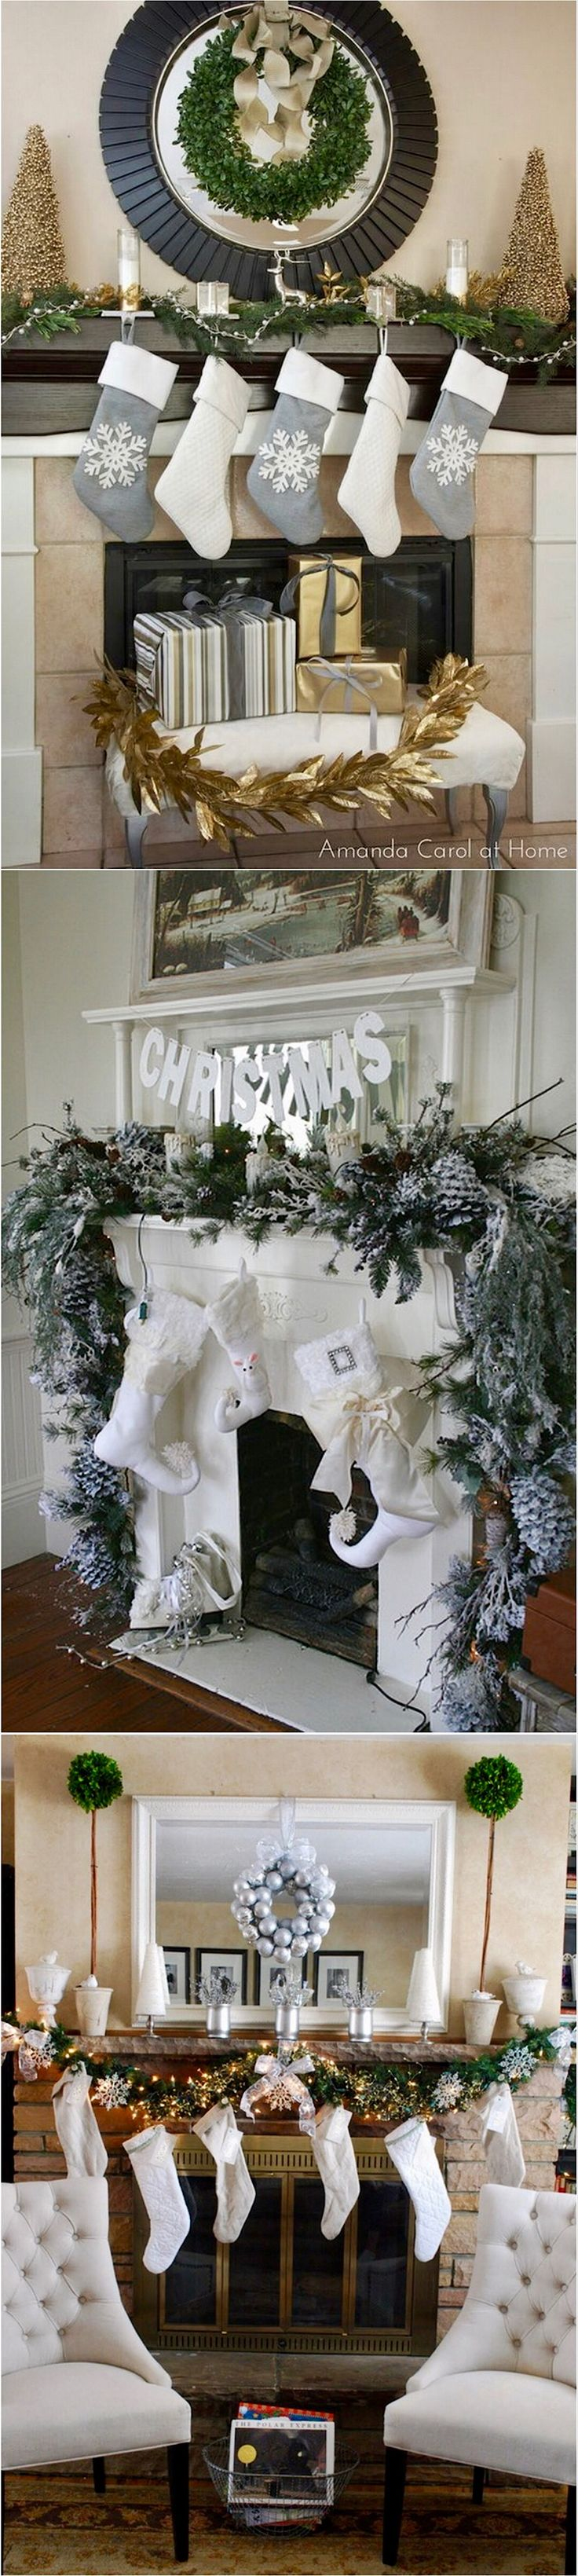 Best Christmas Mantels Images On Pinterest Christmas - Fireplace mantel christmas decorating ideas